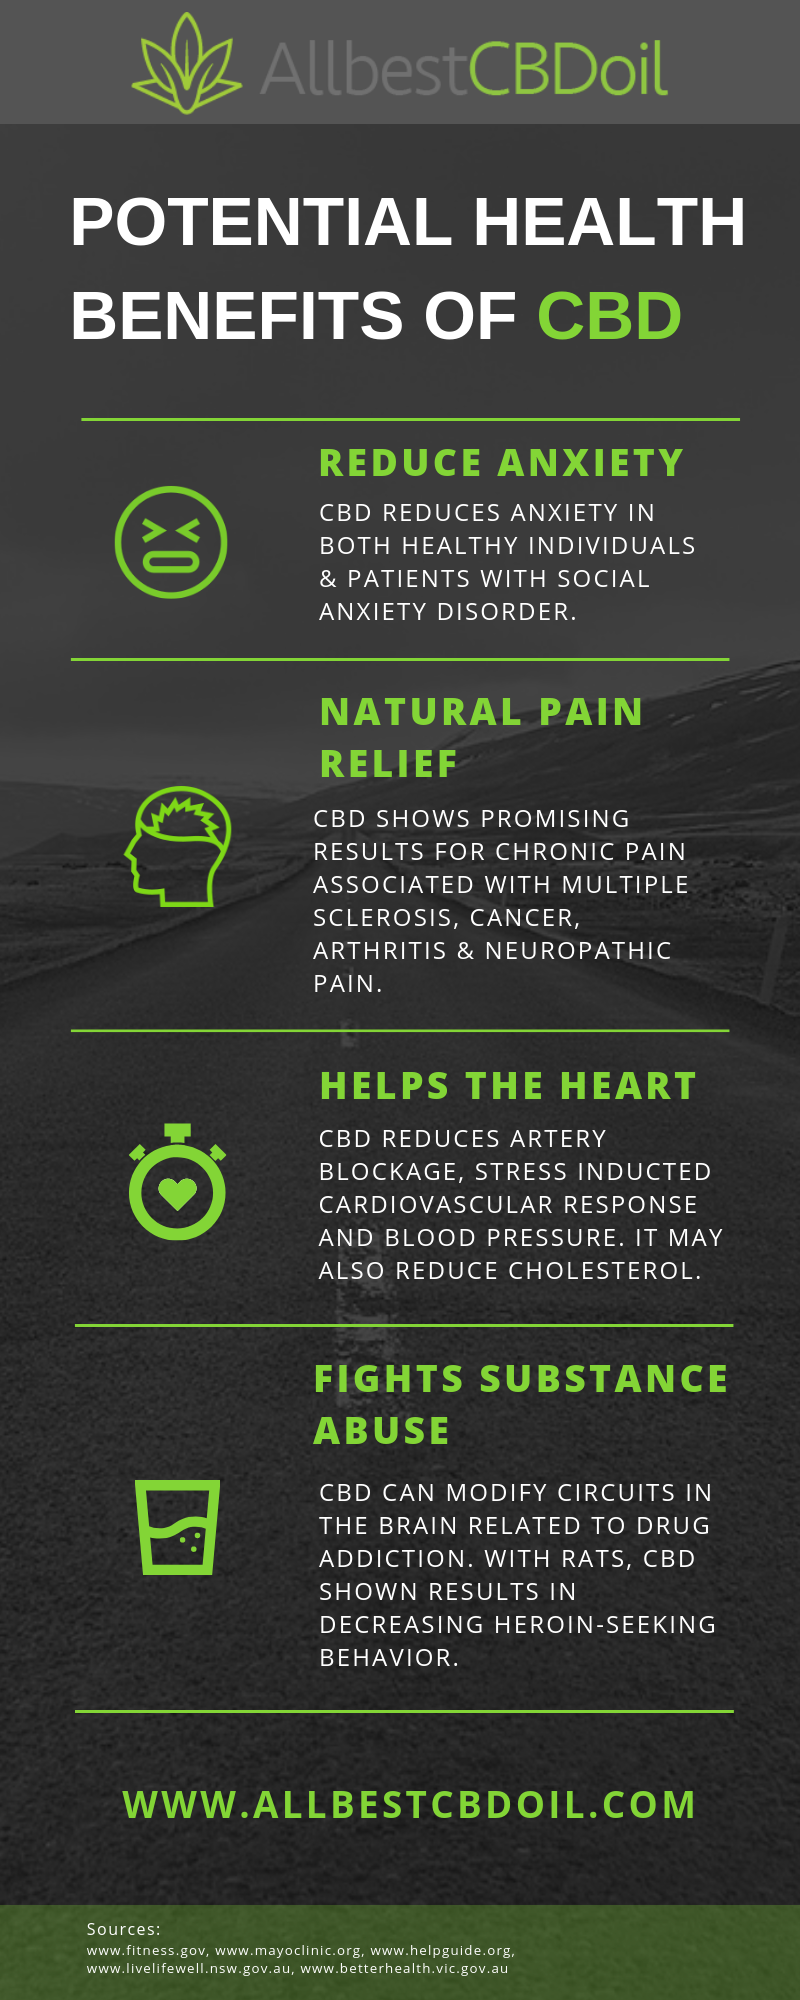 Four Reasons Why CBD Oil is Beneficial - Infographic